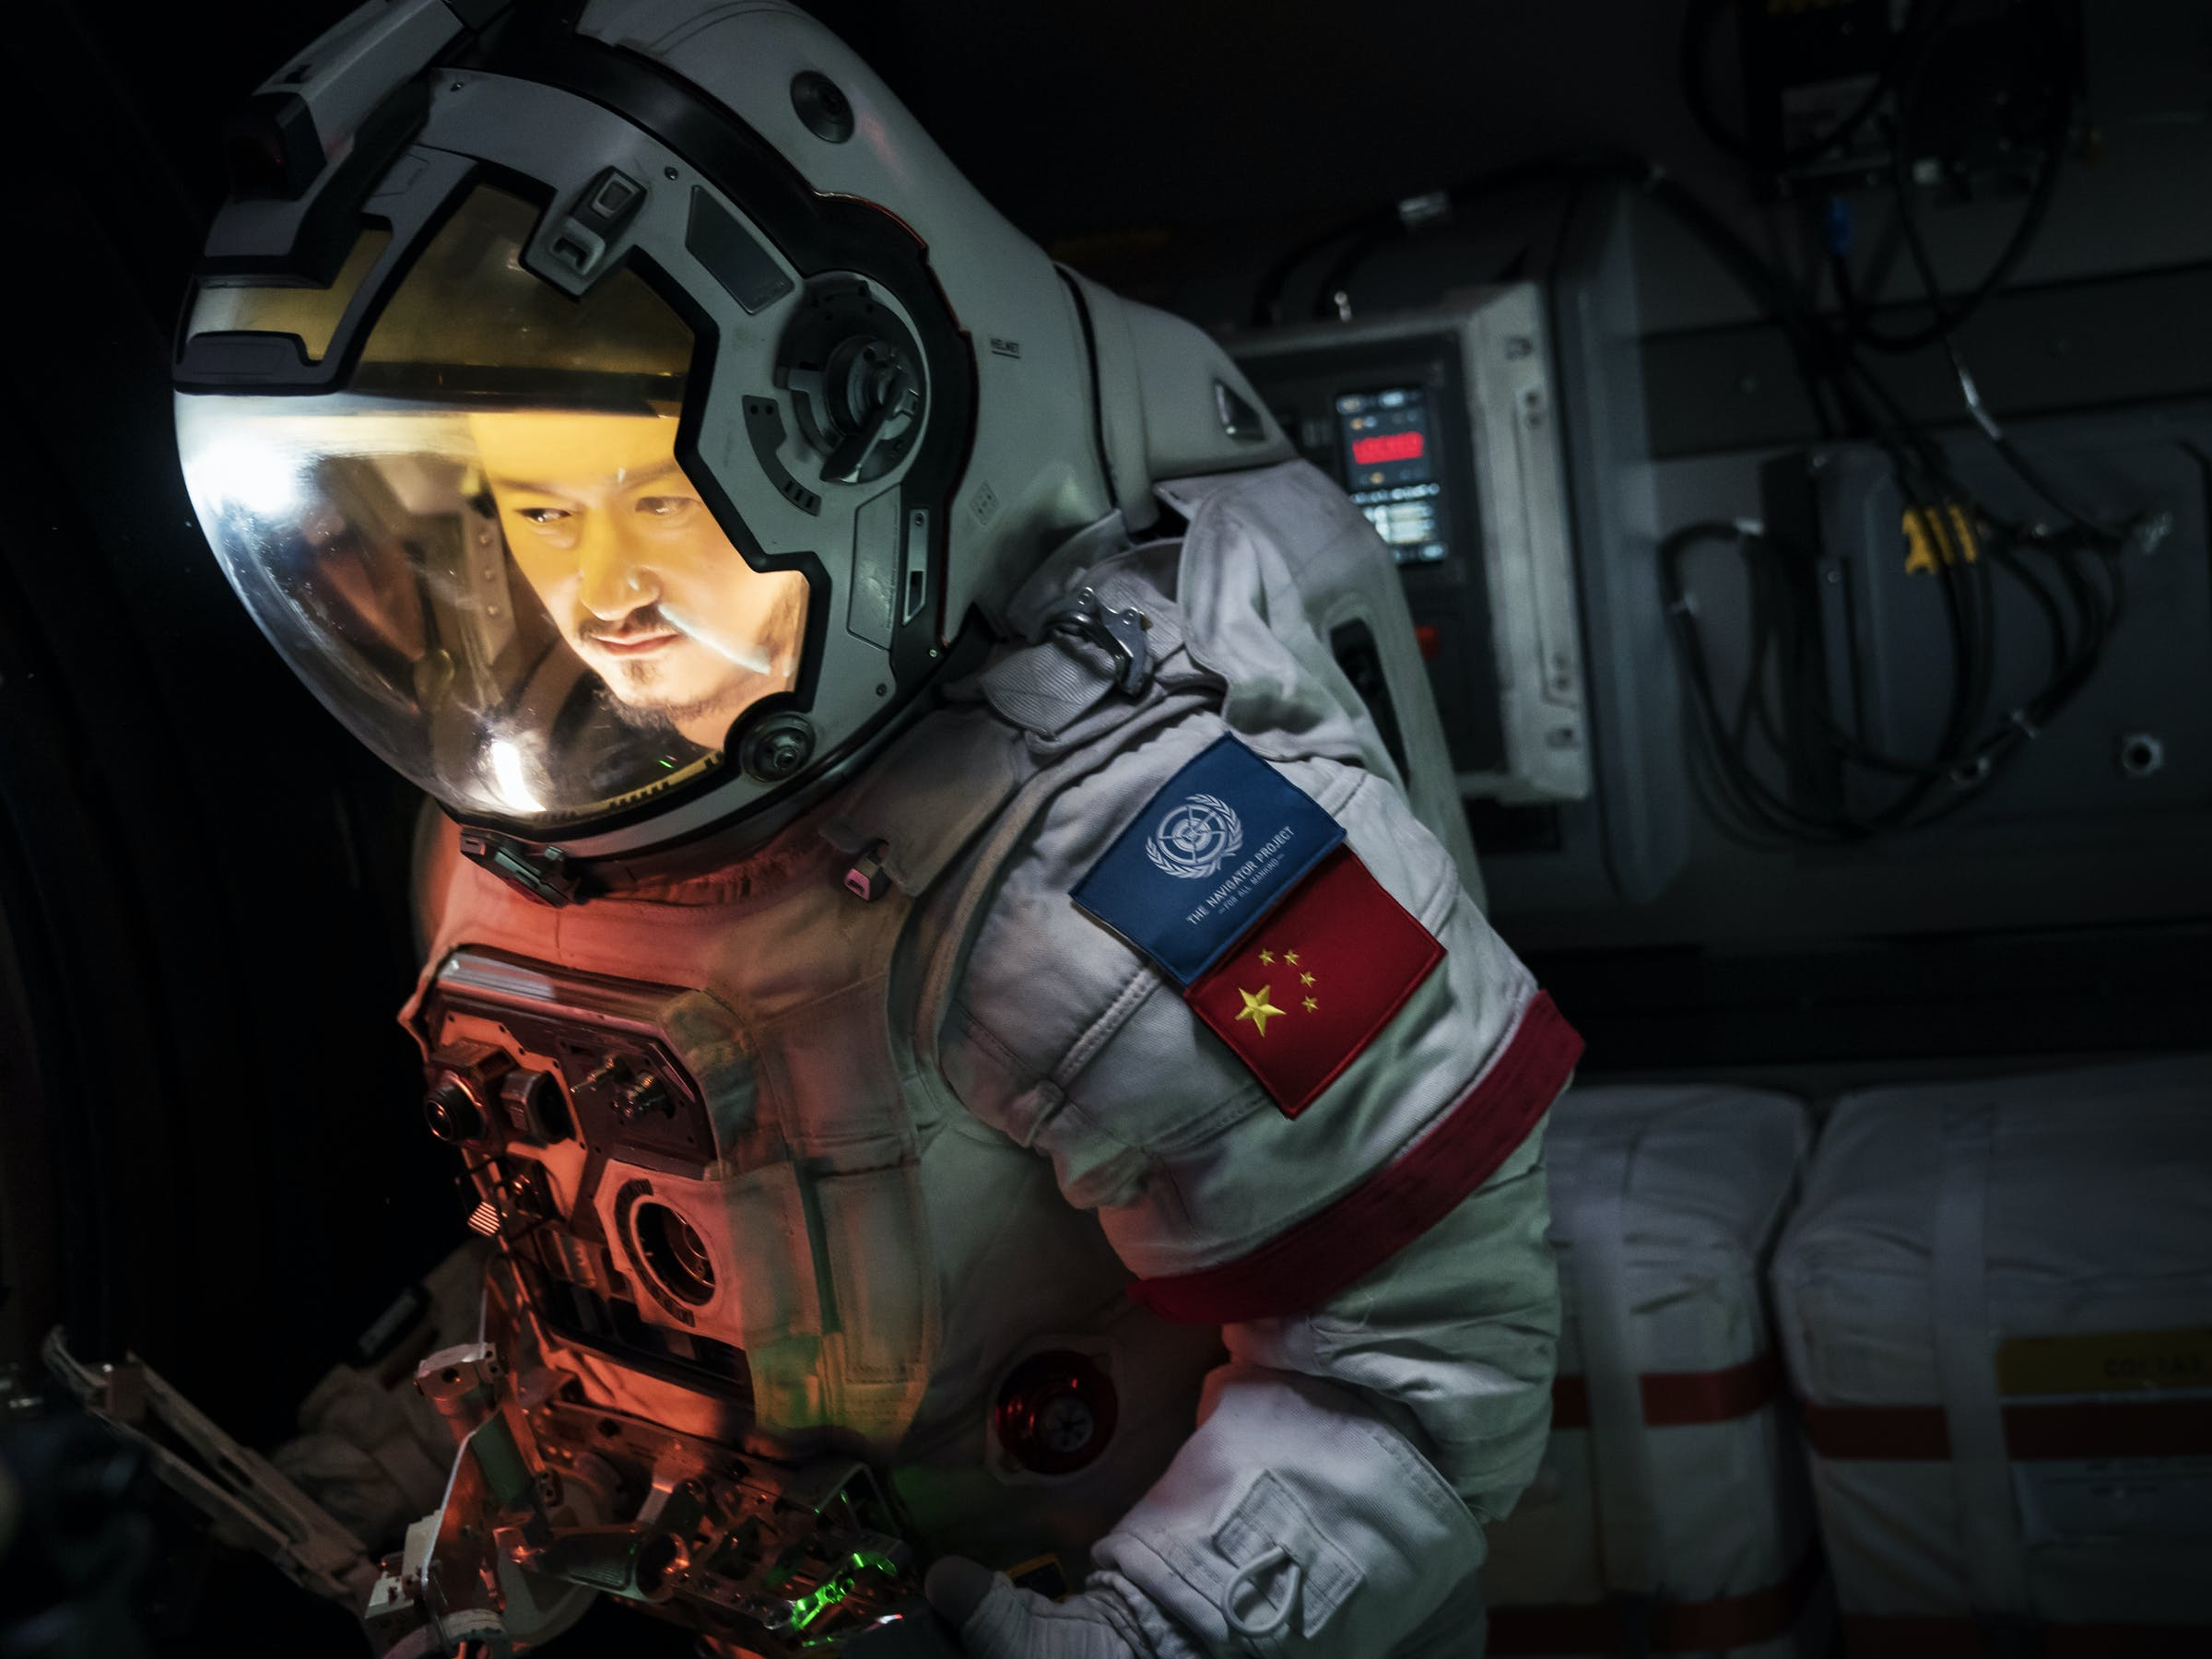 Actor Liu Peiqiang in 'The Wandering Earth'